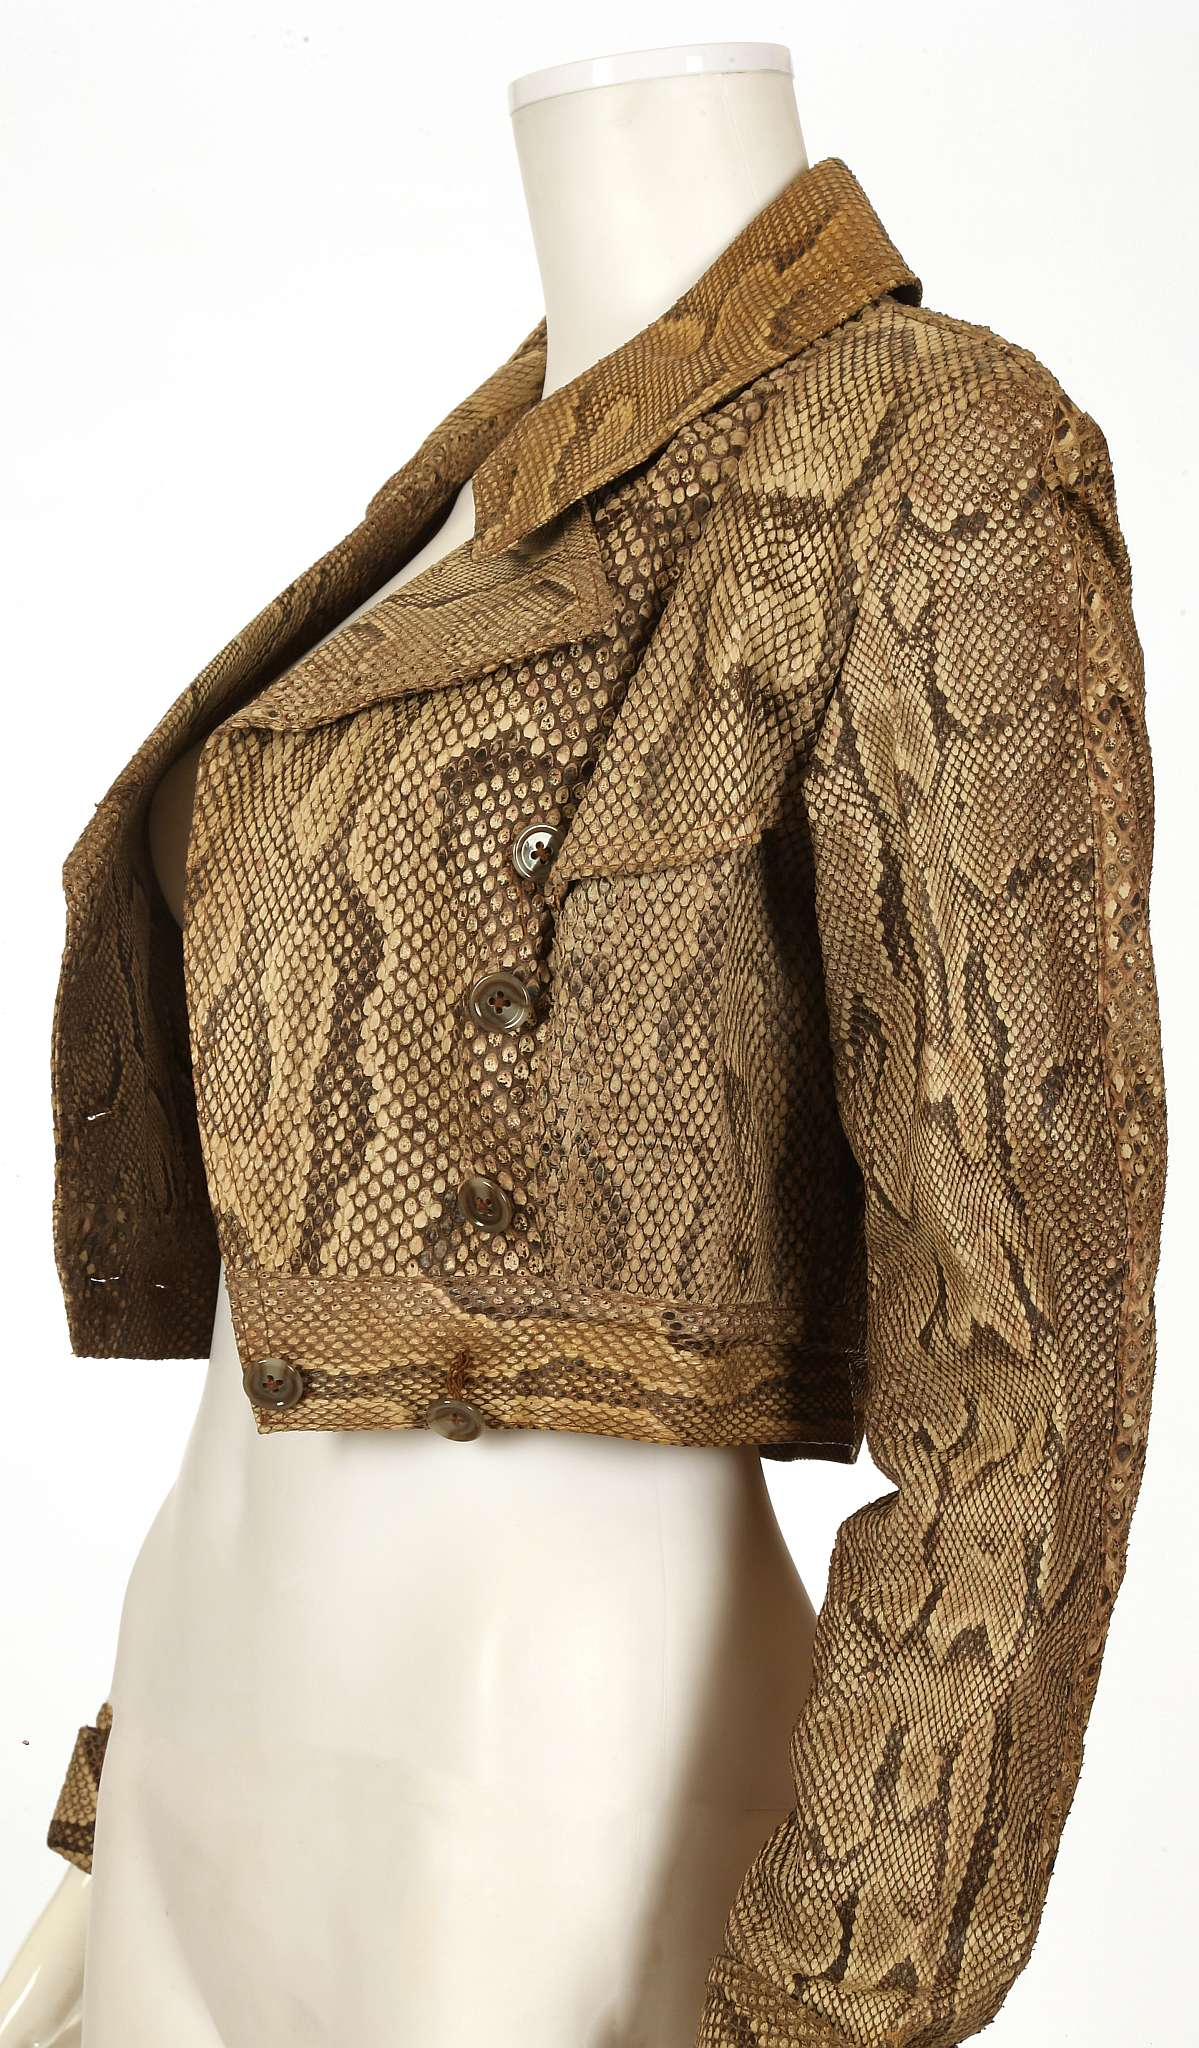 Lot 663 - OSSIE CLARK PYTHON SKIN JACKET, late 1960s, waist length and double breasted with full lapels and